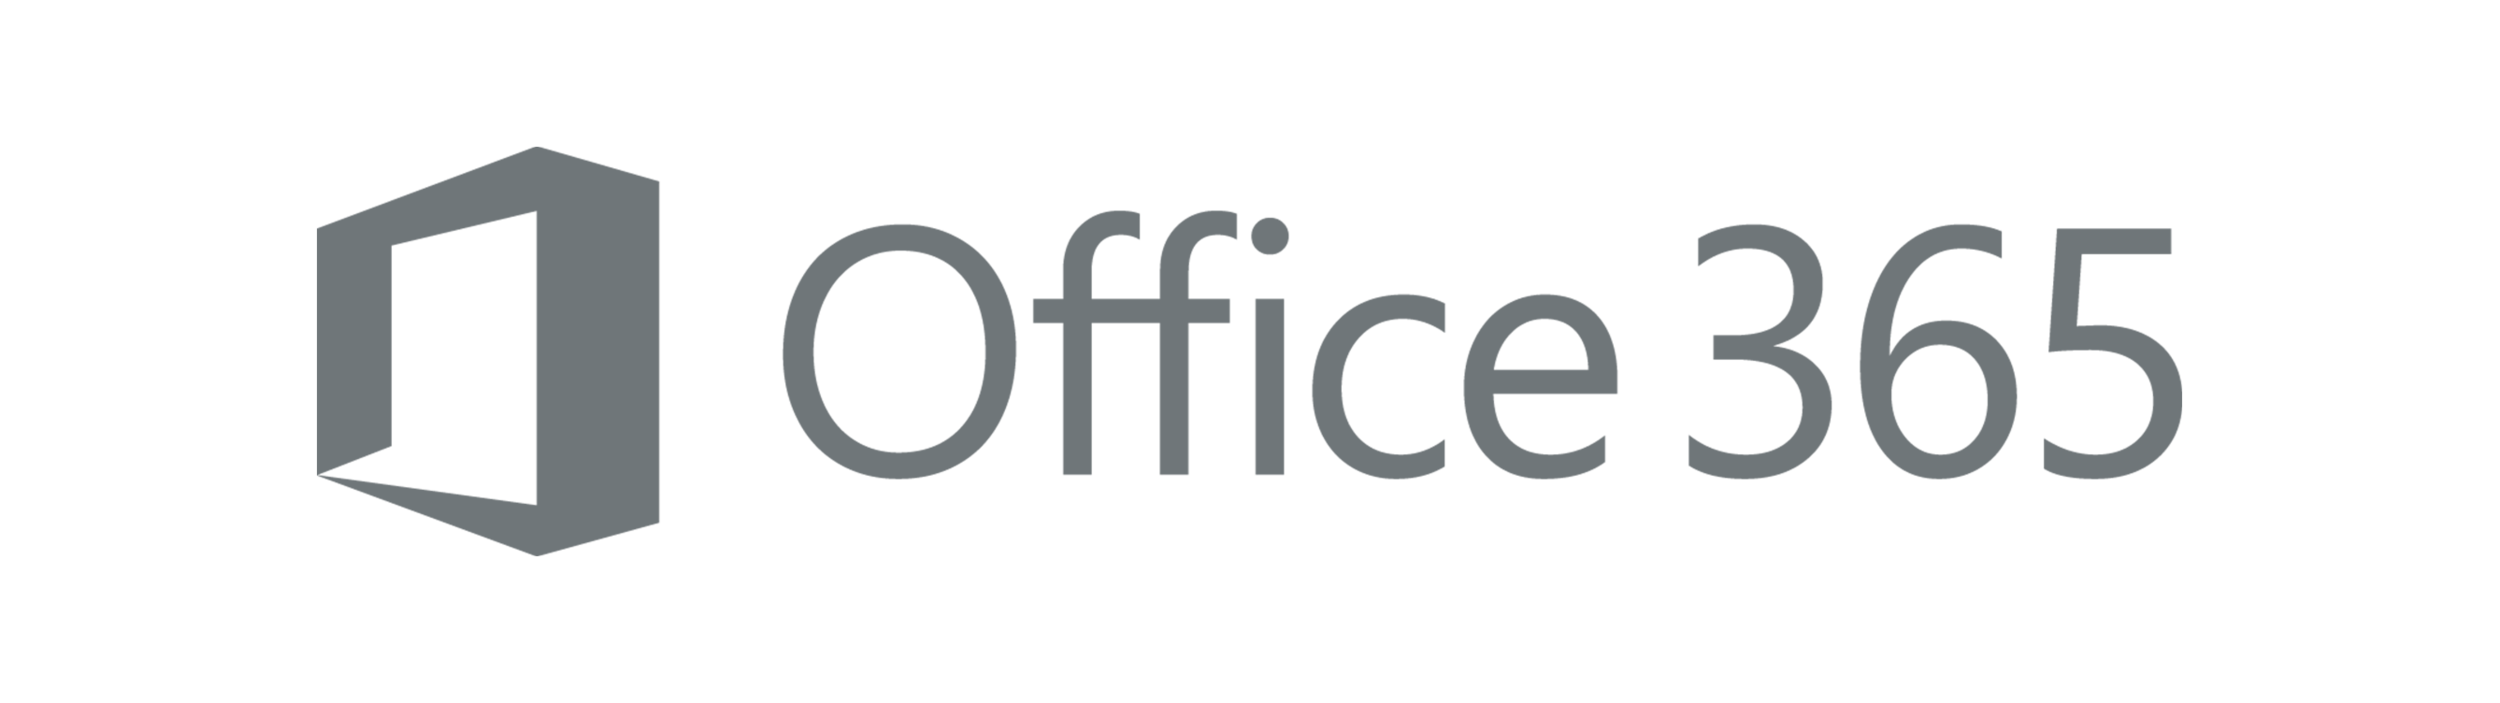 Office_365_logo_grey.png